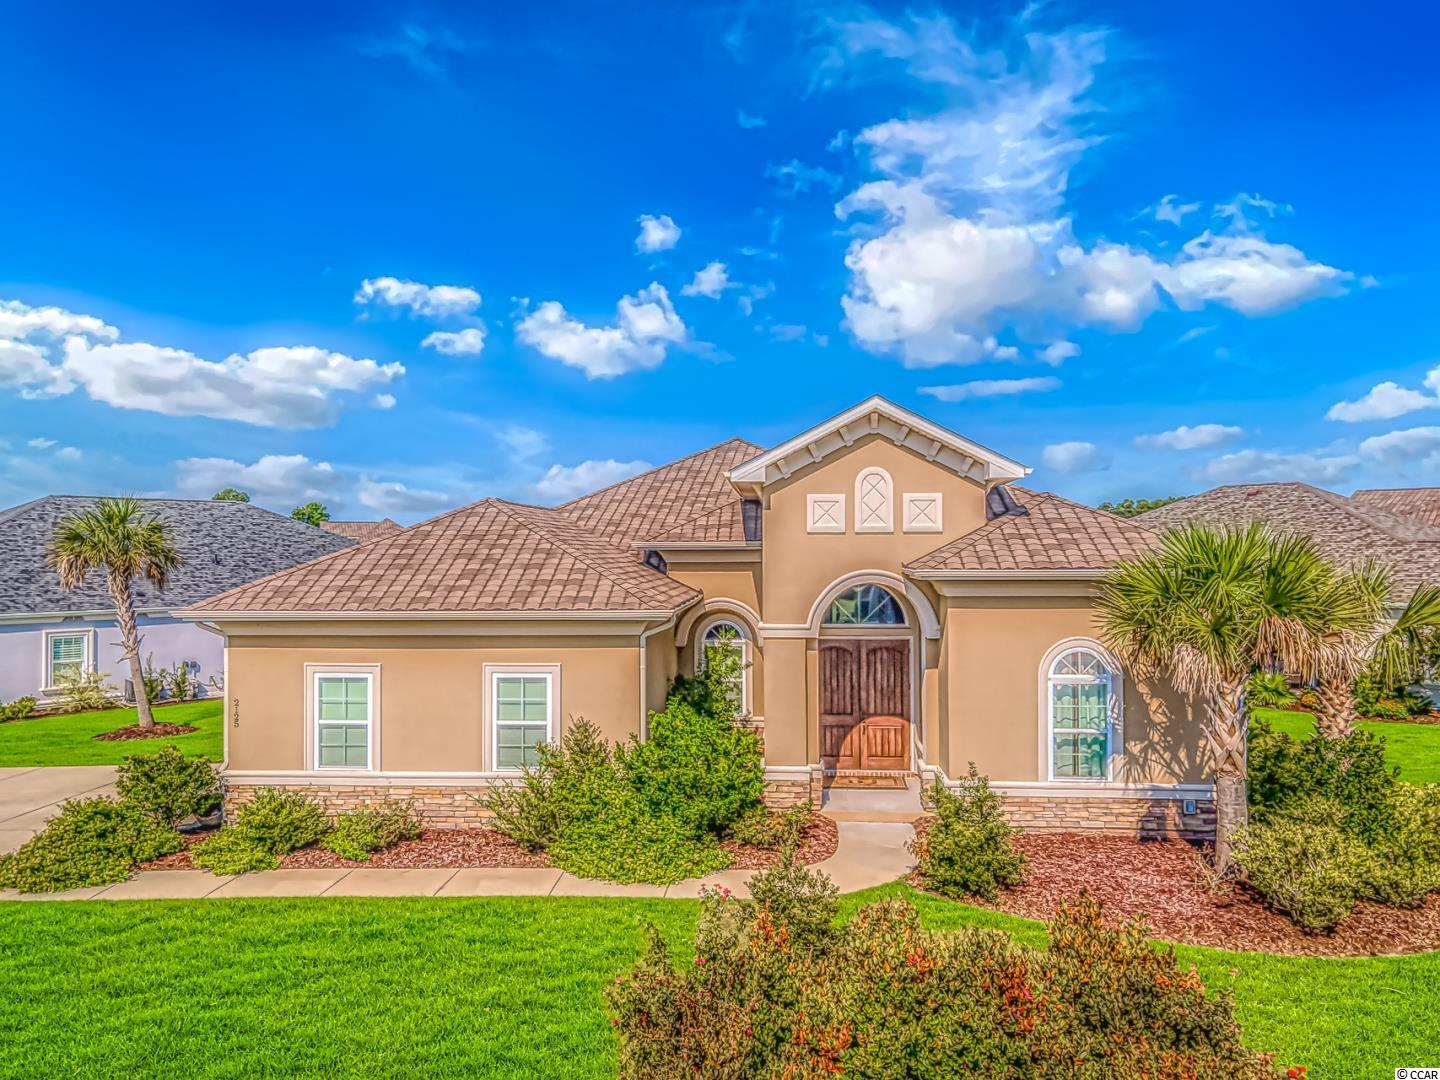 **Largest lot in Tuscan Sands, check out the drone view** This gorgeous custom-built Mediterranean style home is located in the highly desirable community, Tuscan Sands, in Barefoot Resort.  This one level floor plan offers 4 spacious bedrooms and 3 full bathrooms. When you enter the large double front door you are brought into the foyer which features a tray ceiling with a height of 14 ft. You will notice luxury hardwood floors throughout the main living areas and master bedroom. There is a designated formal dining room with a tray ceiling that is perfect for gatherings. The main living space is an open floor-plan with plenty of natural light and full access to the upgraded kitchen. This state-of-the-art kitchen features granite counters, classic tile black-splash, stainless steel appliances including a double wall oven, a cook top with a hood. The kitchen cabinets are upgraded maple linen with crown molding and soft close drawers. Just imagine cooking your favorite gourmet meal here! The master bathroom is exquisite with tile, a large walk-in shower, relaxation tub, double vanities with granite counter tops, and double walk-in closets. Oil rubbed bronze lighting and hardware throughout the home, along with more tray ceilings, and ceiling fans. Plantation shutters and window treatments will convey with this home. Enjoy evenings out on the patio sipping your favorite cocktail. No expense was spared in the construction of this home, book your showing today!